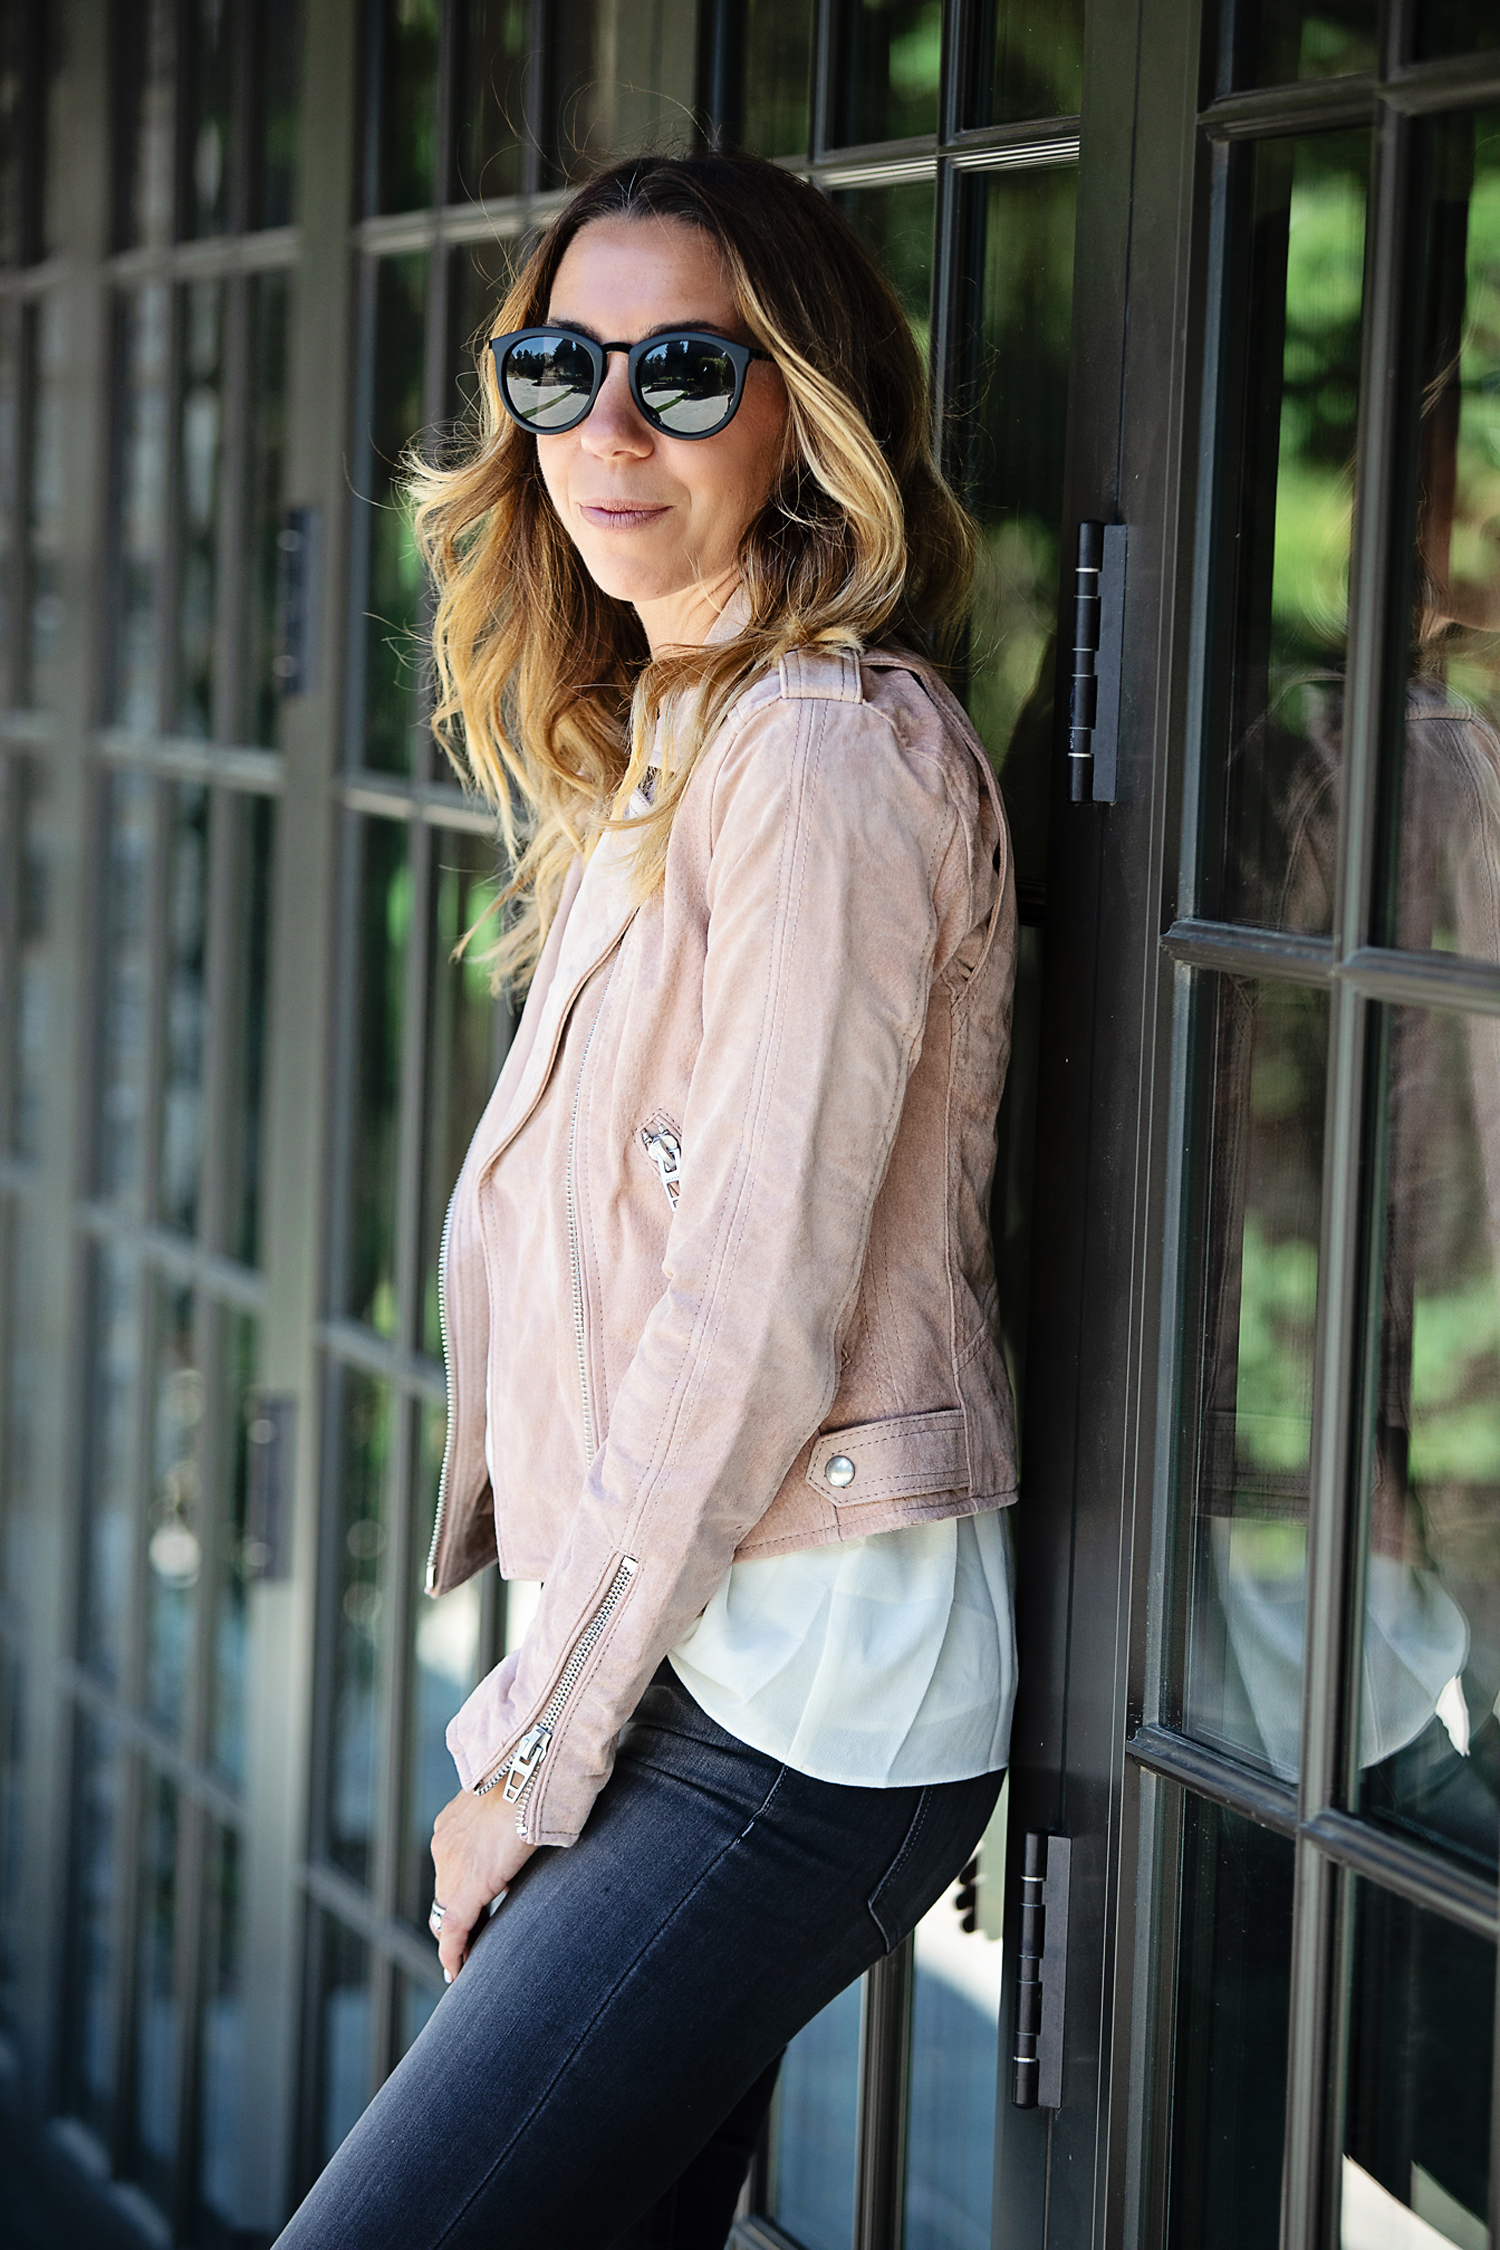 The Motherchic wearing blanknyc suede moto jacket